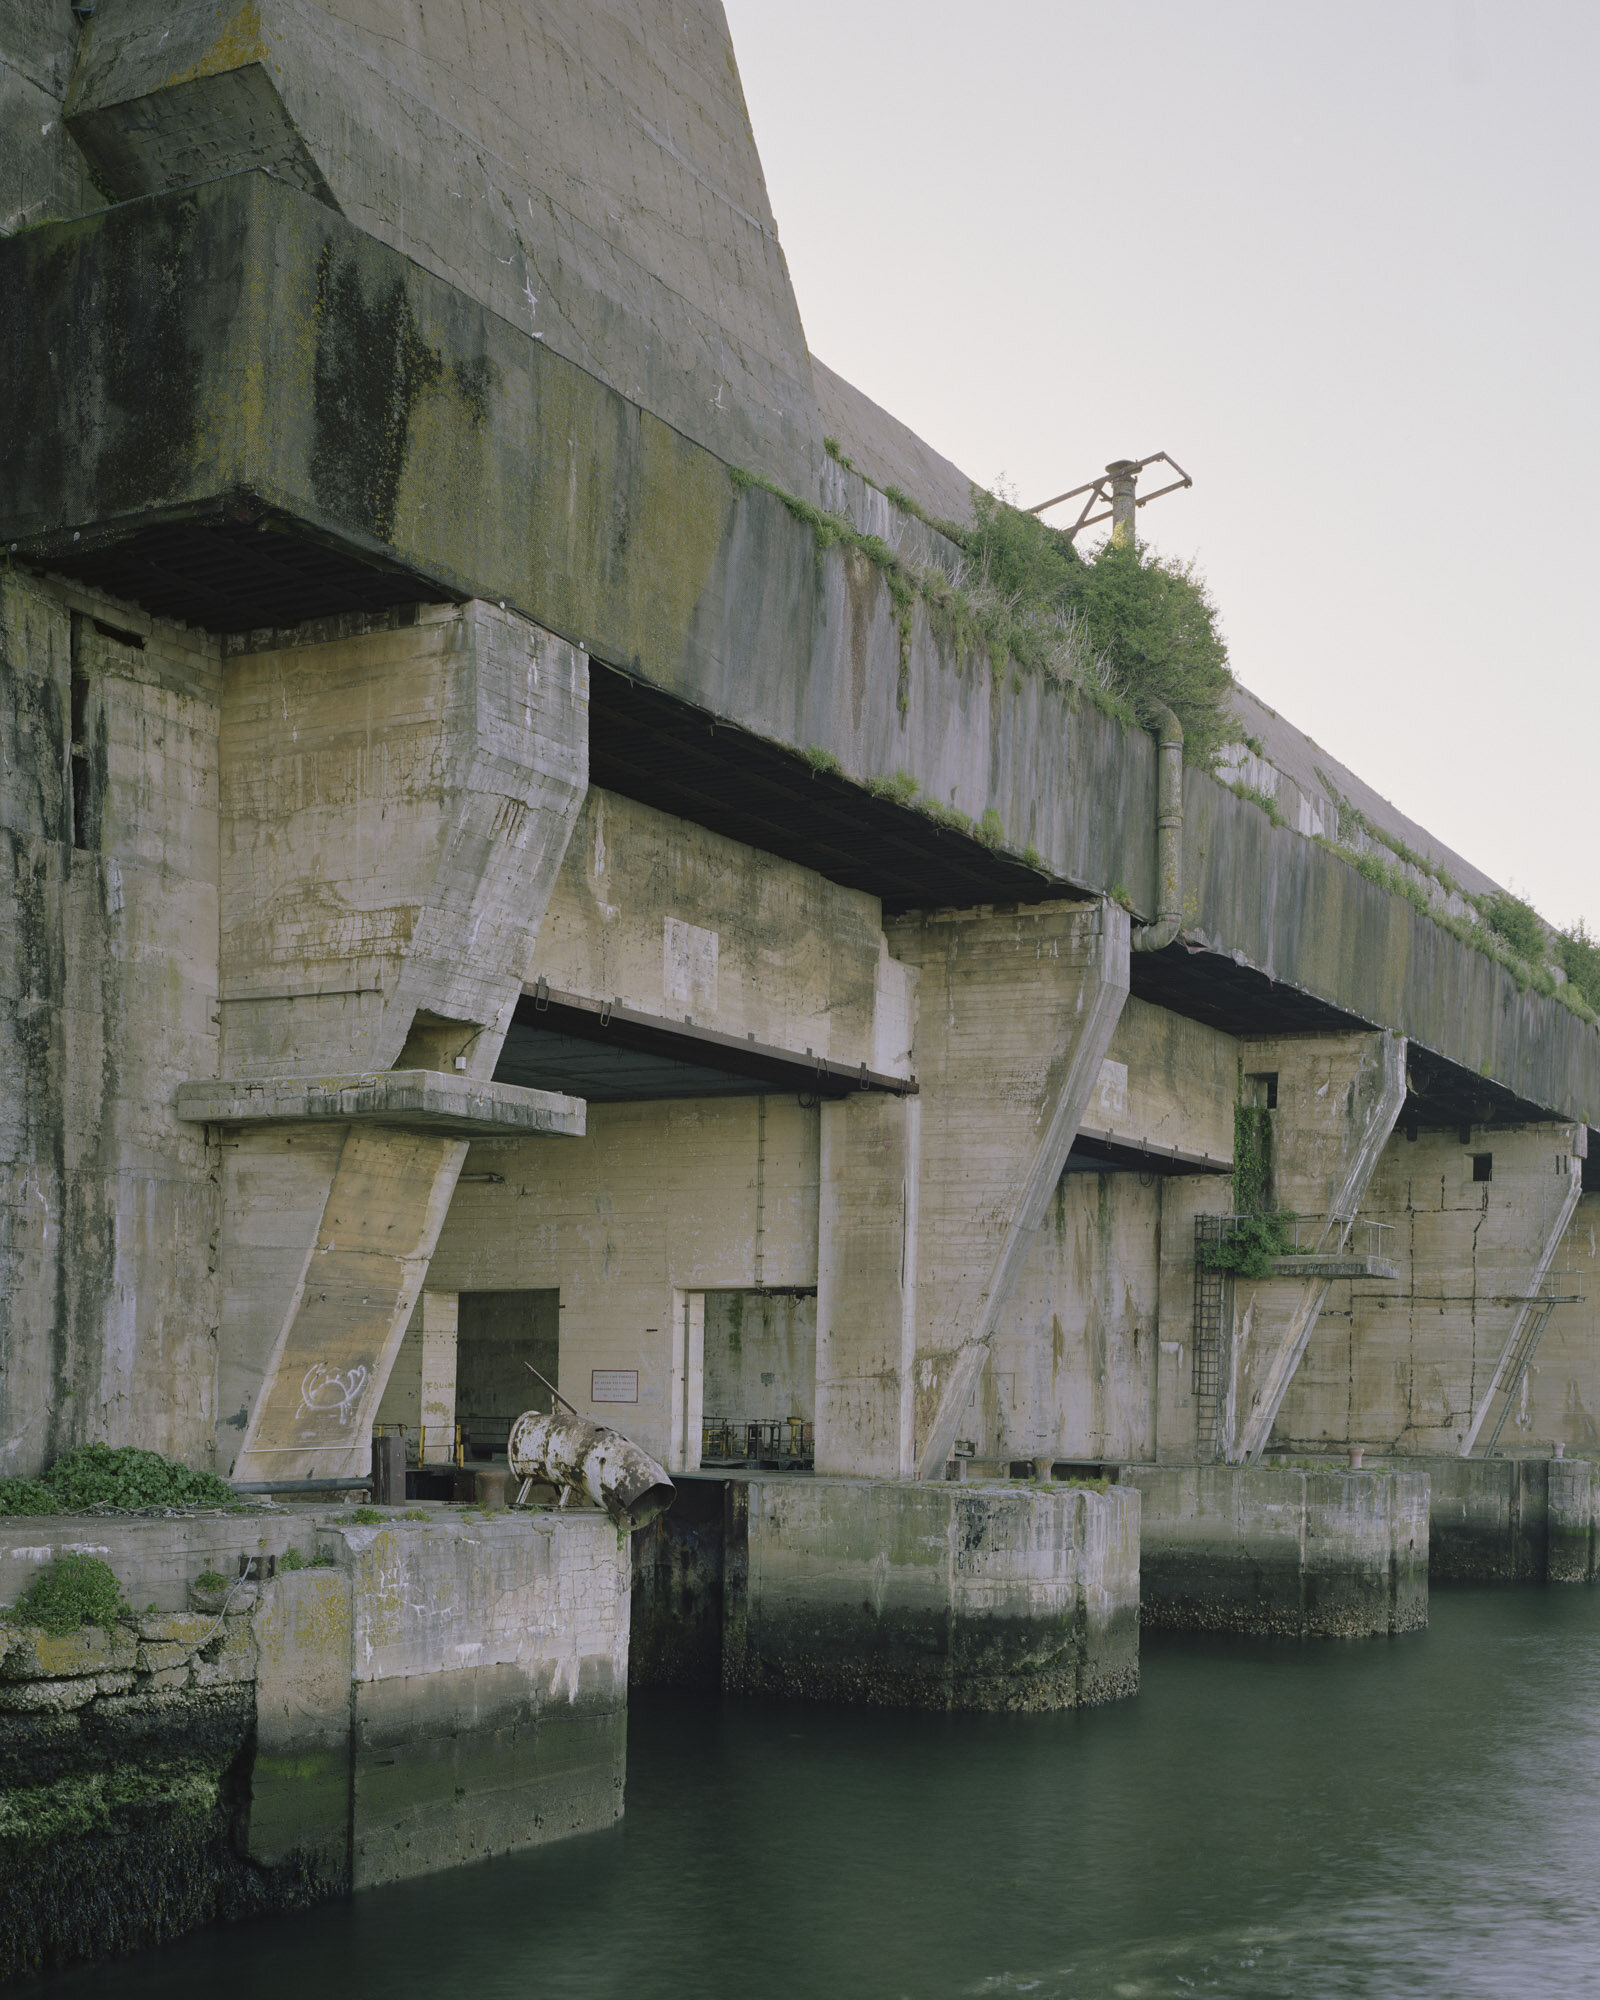 Lorient, Brittany, France. 2014